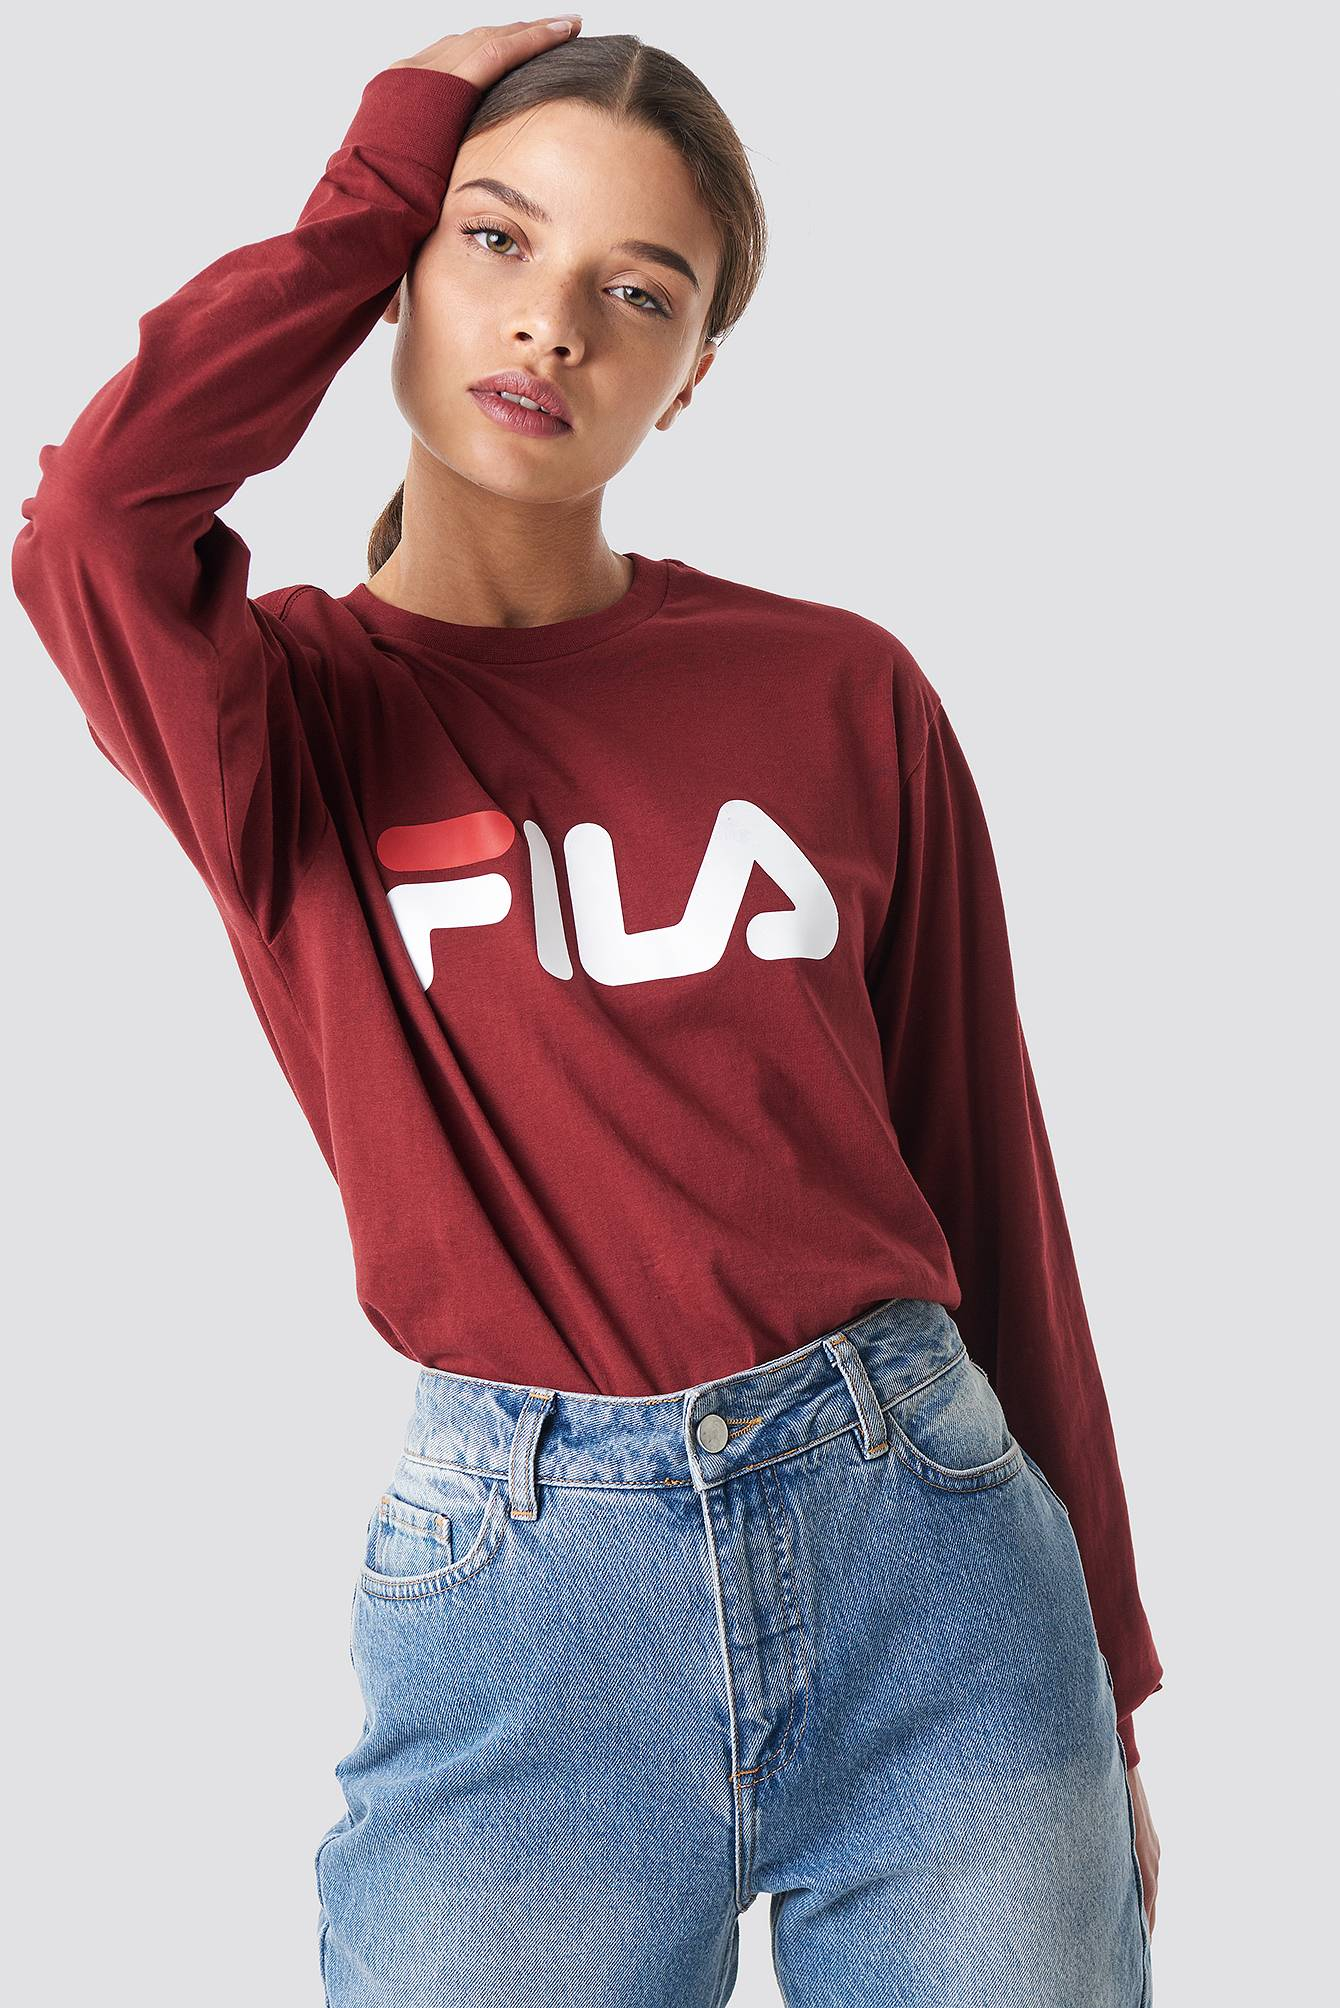 FILA Classic Pure Long Sleeve Shirt - Red